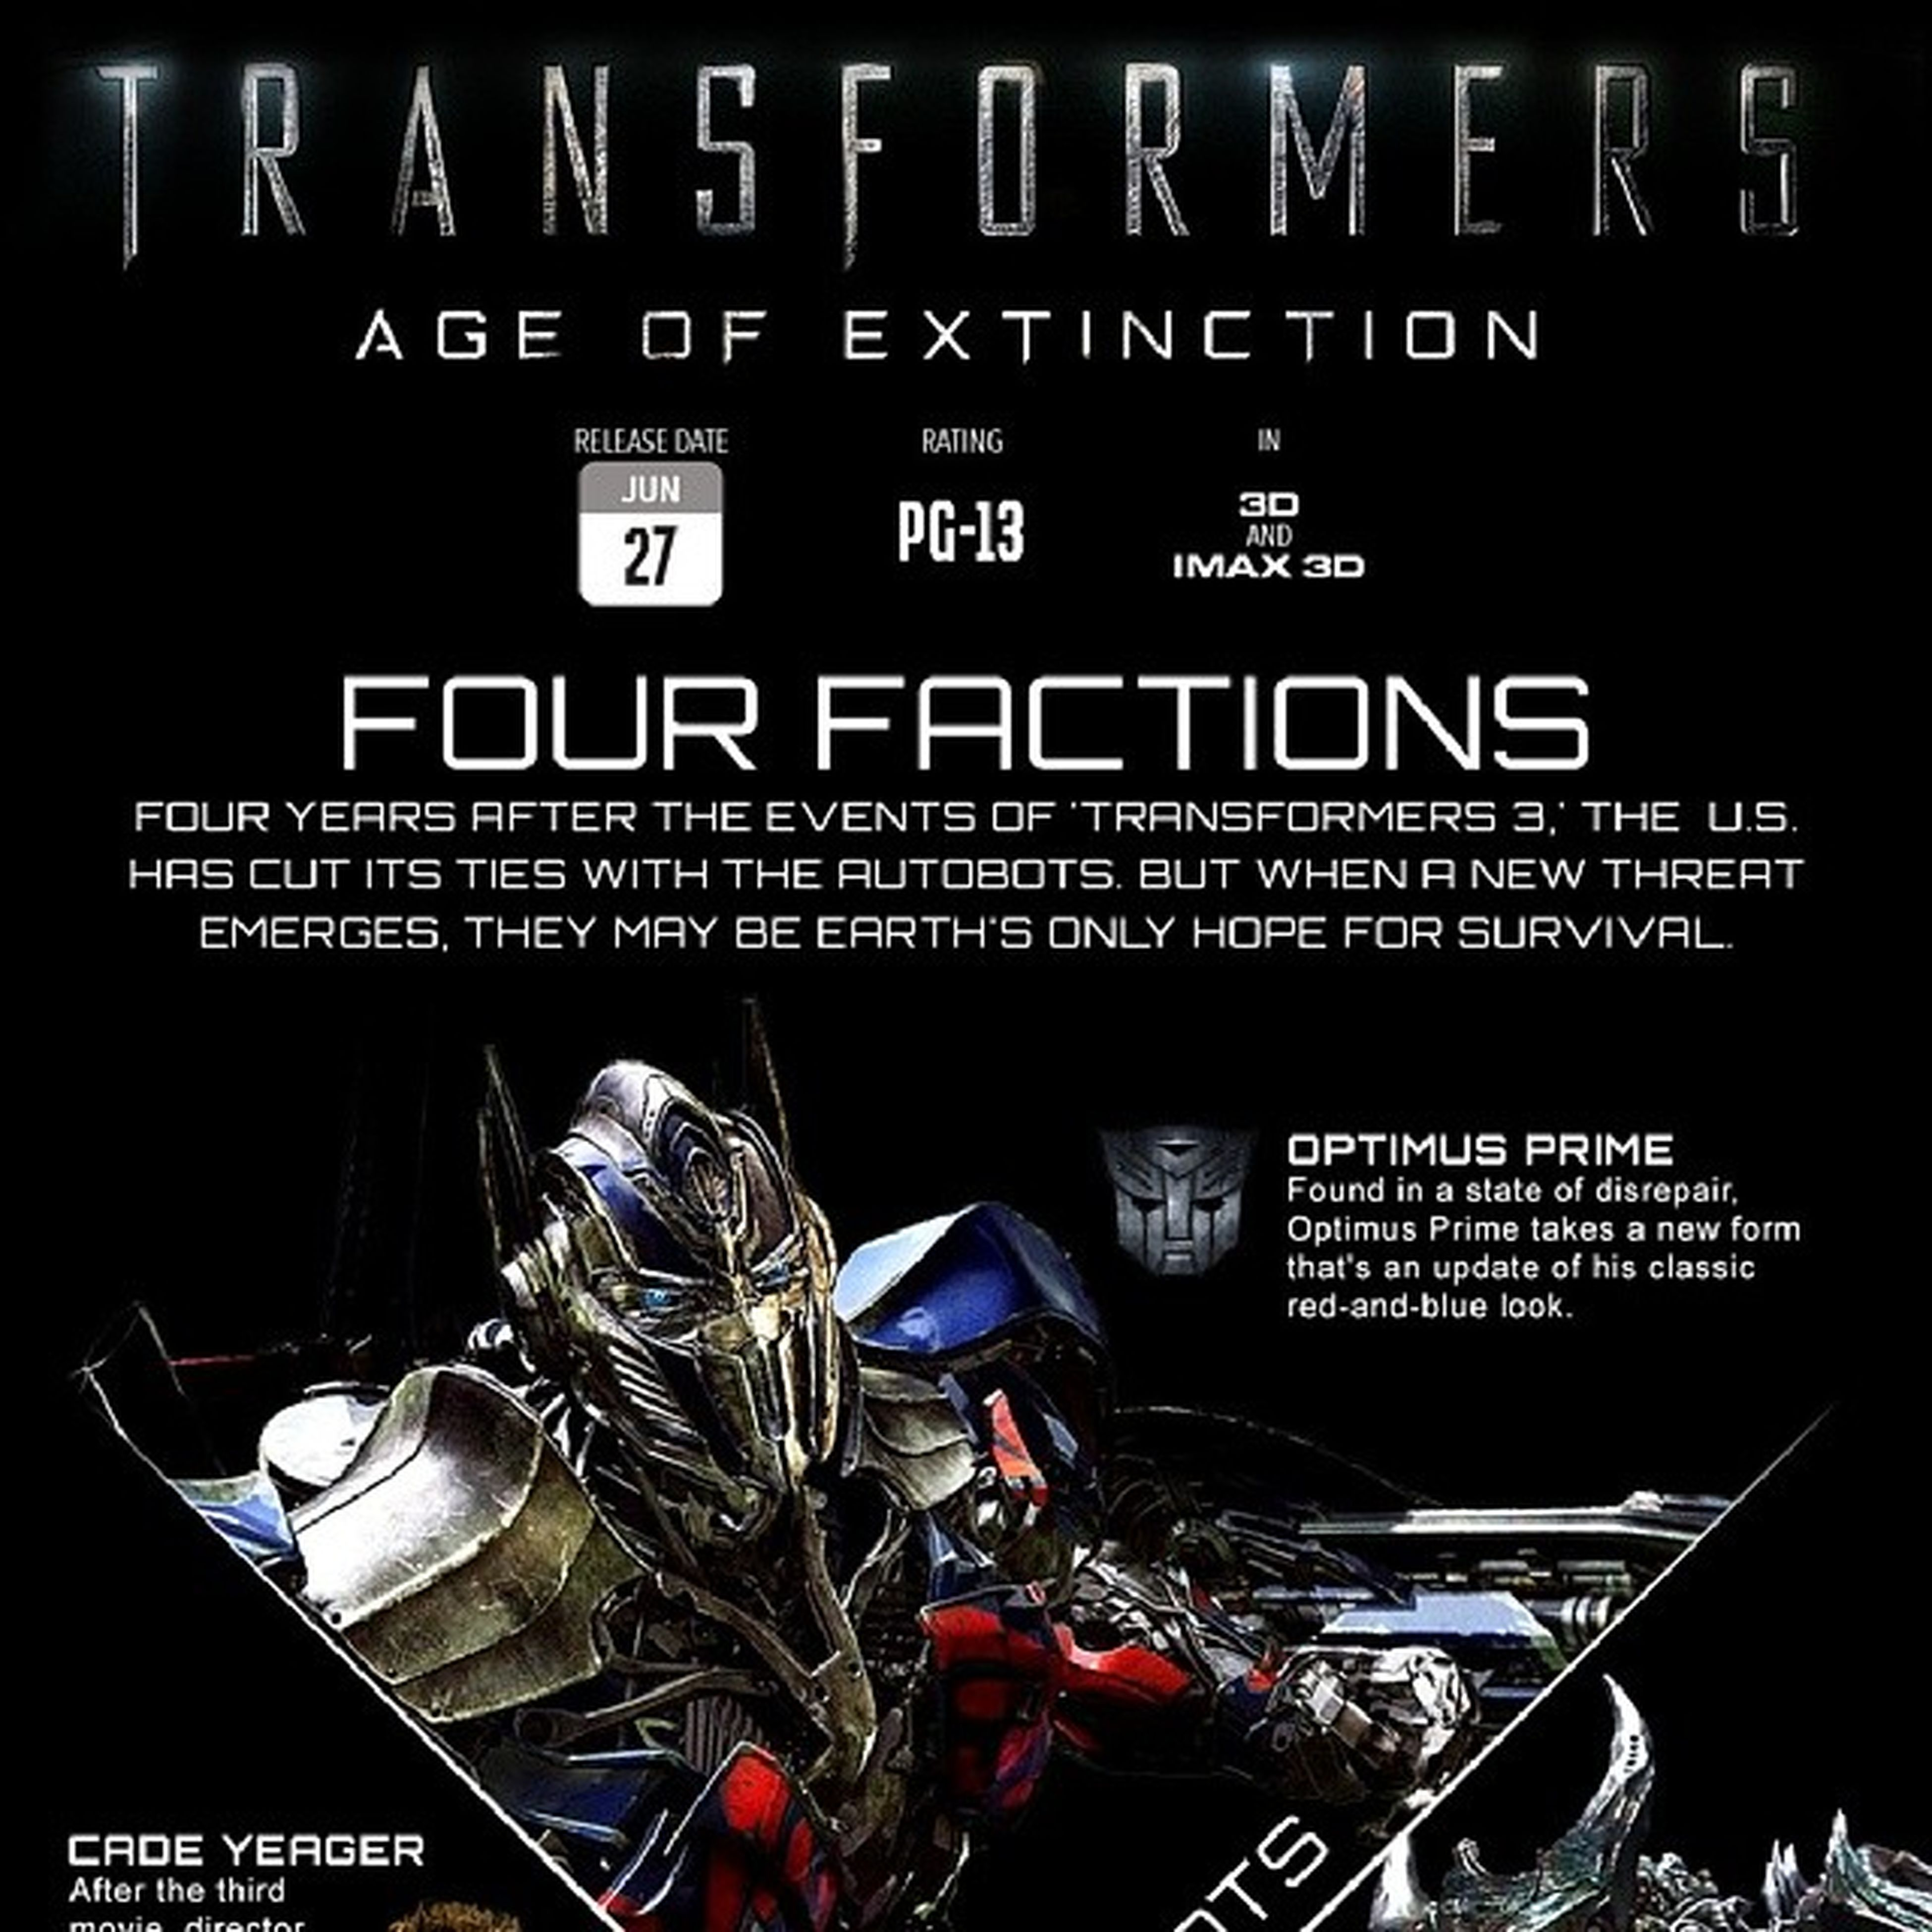 Waiting for Transformers Age of Extinction Premier 27 06 2014 Amazing action N new character Decepticon n Autobot Crop1 Optimus Prime